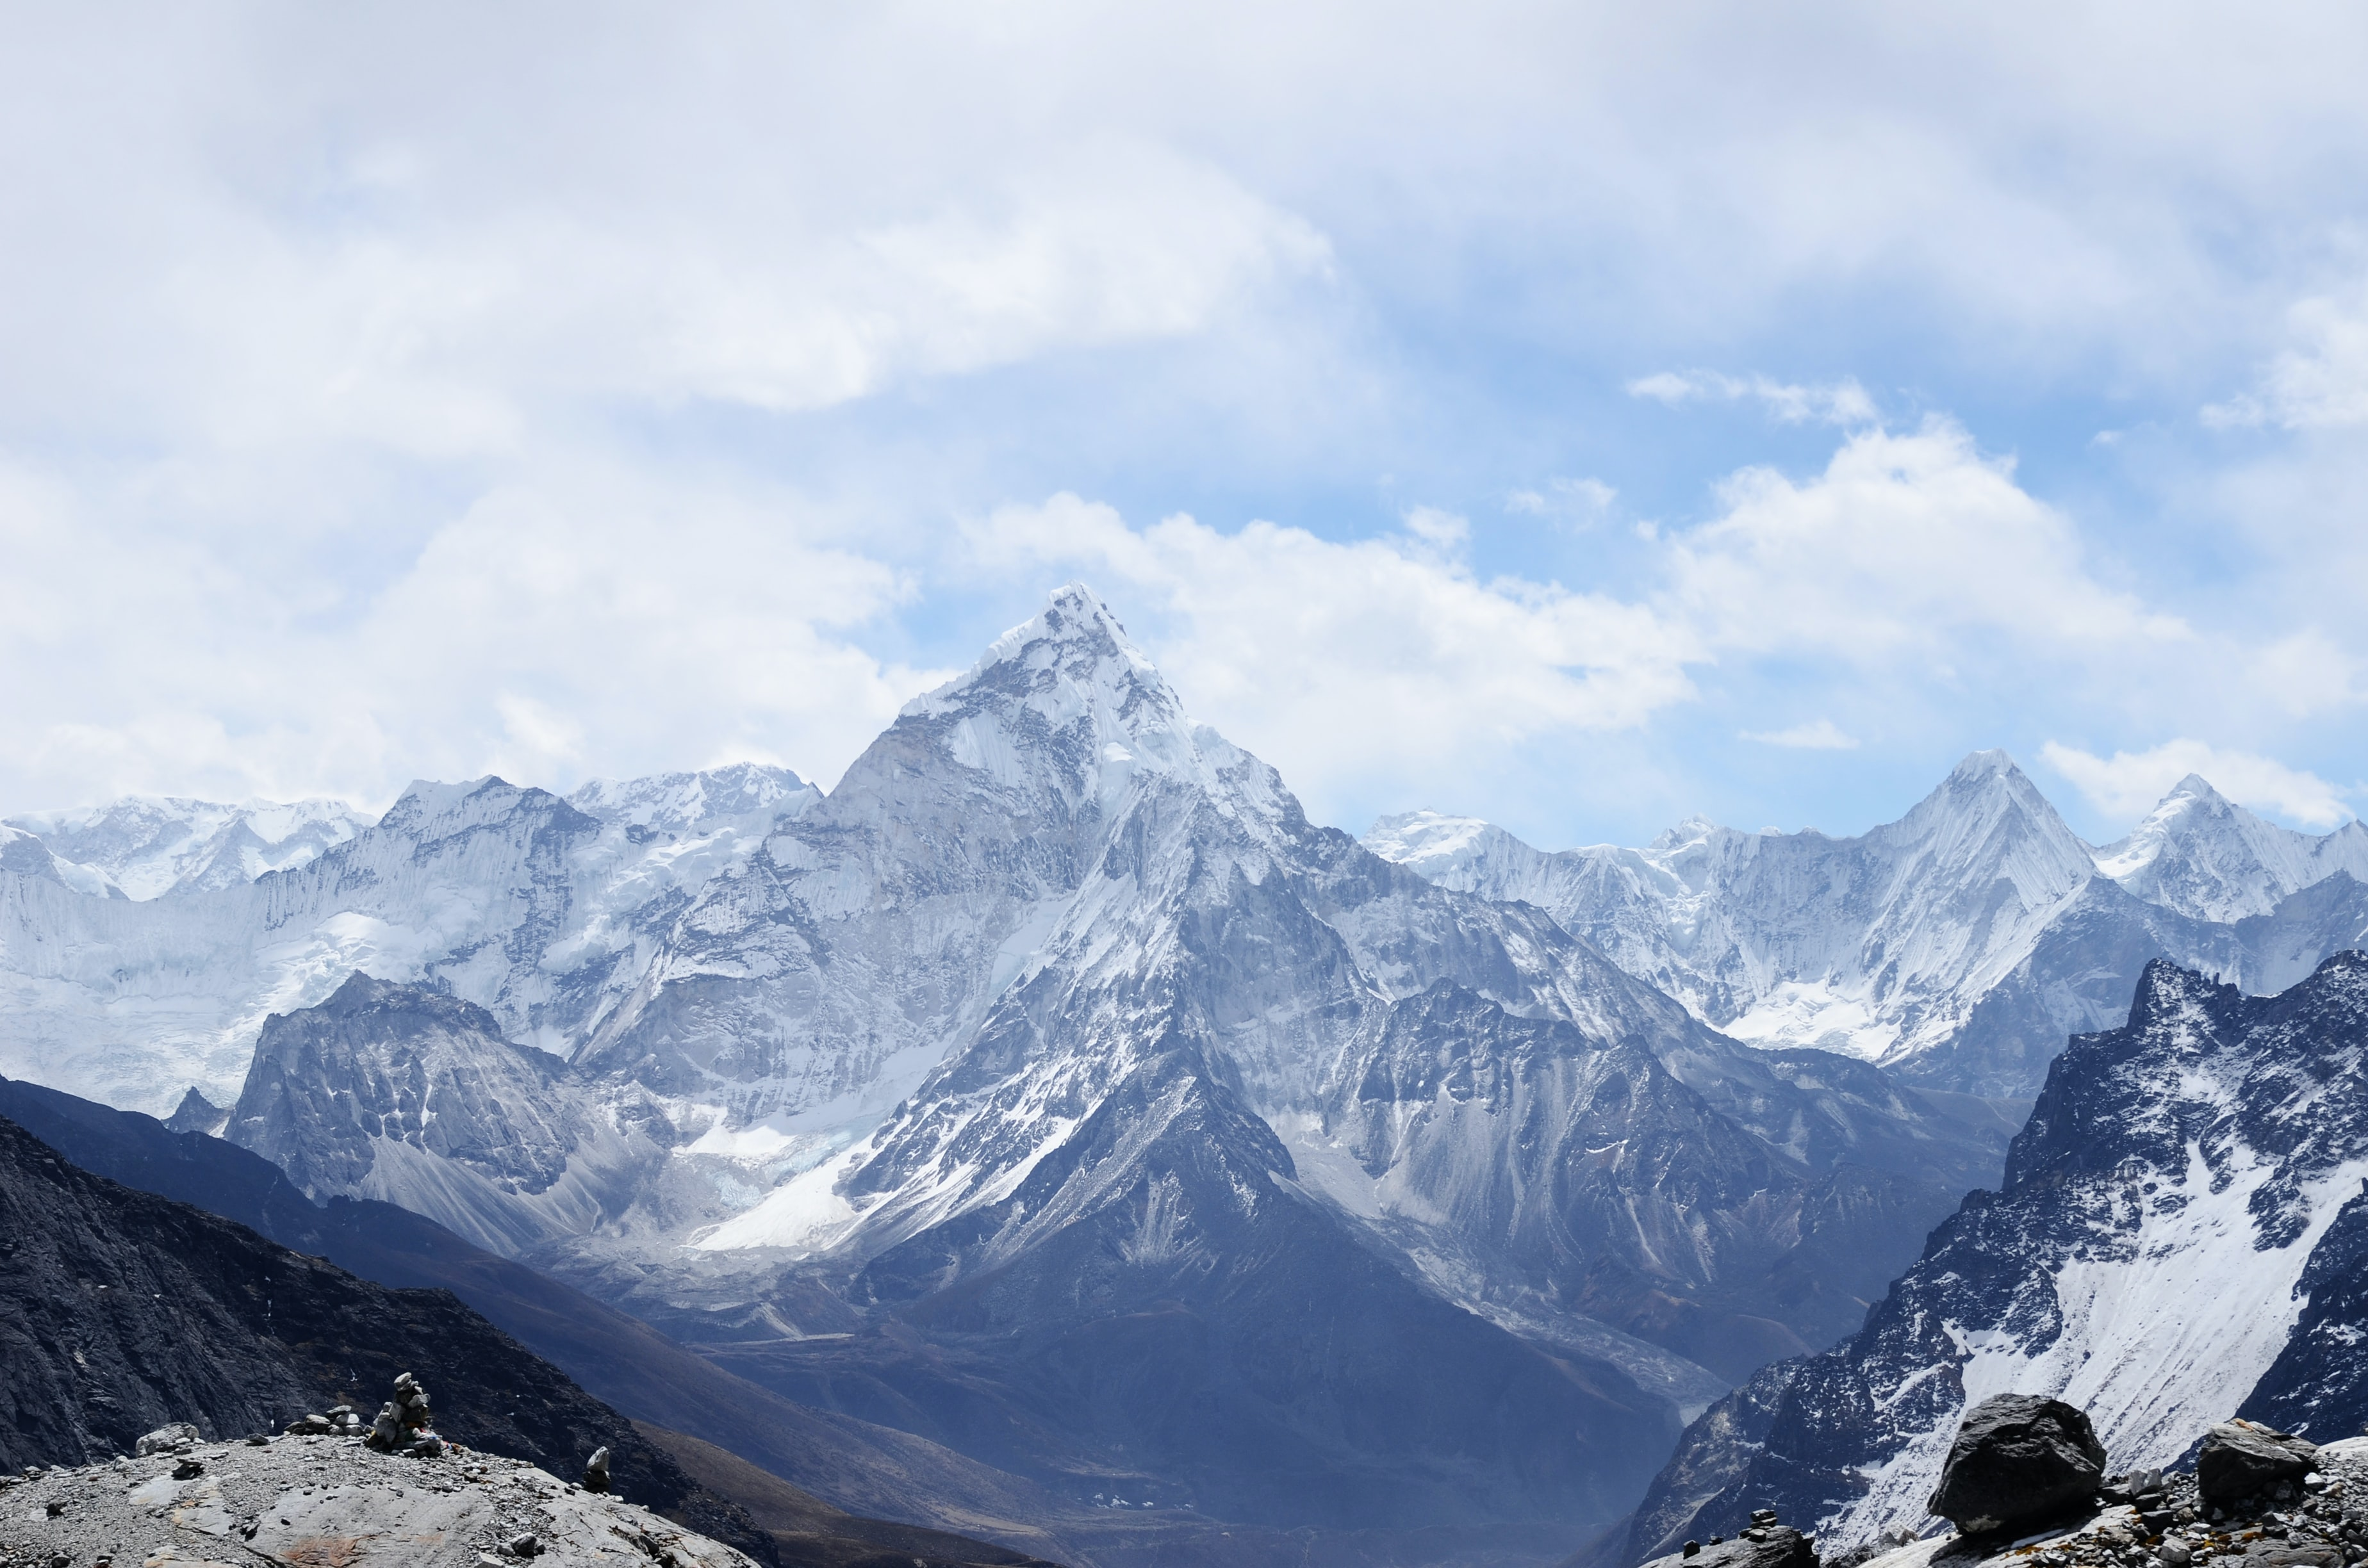 Dramatic landscape with the peak of the mighty Ama Dablam mountain towering over a valley